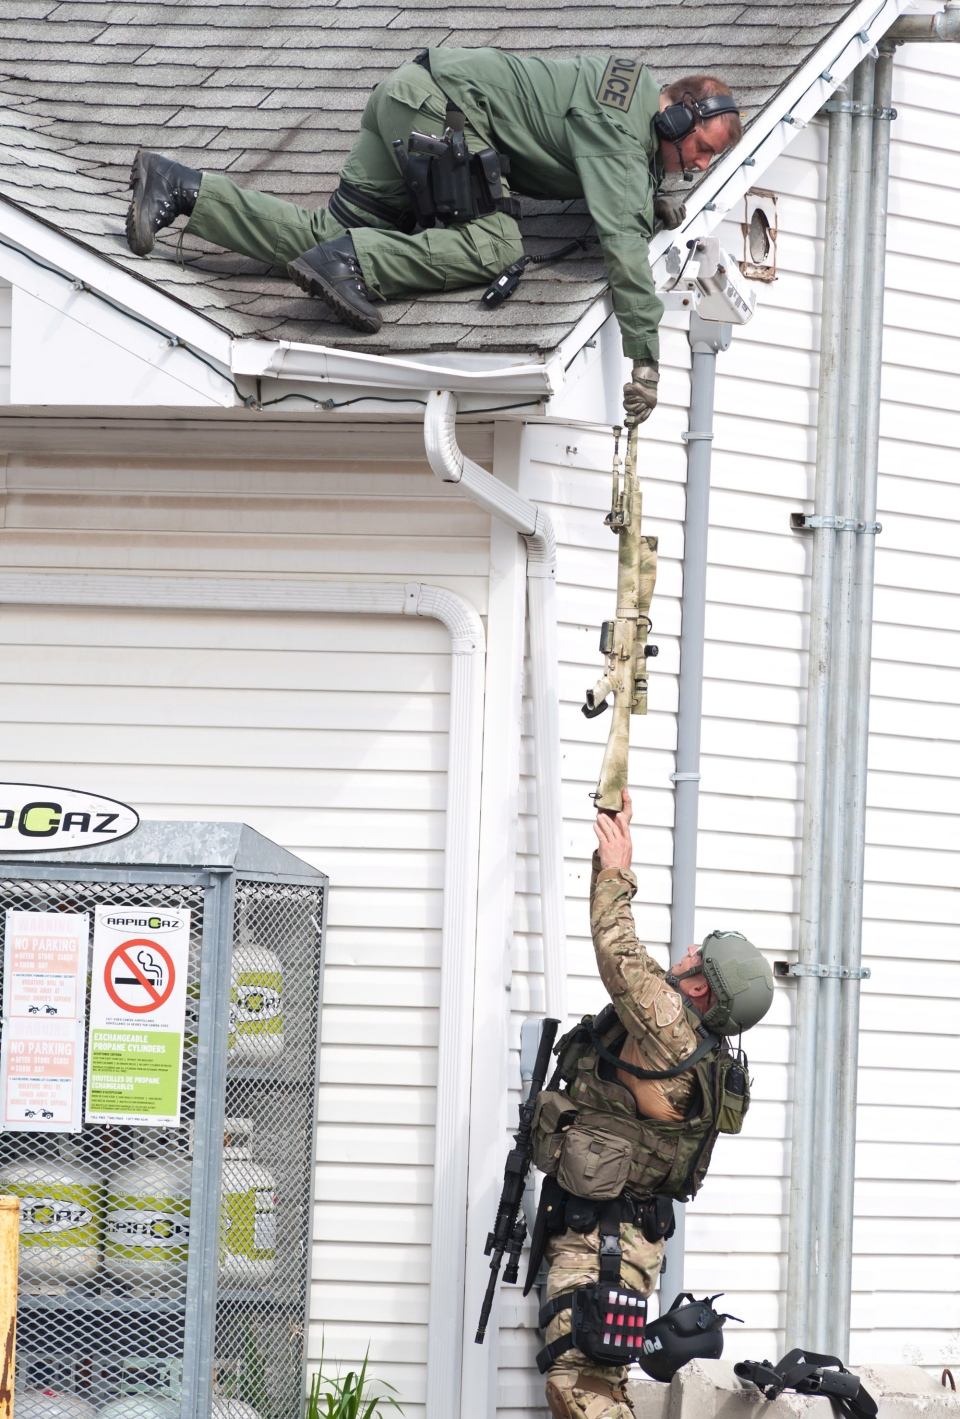 A weapon is passed to an RCMP Emergency Response Team member on the roof of a house in Moncton, N.B., Thursday, June 5, 2014. (Marc Grandmaison / THE CANADIAN PRESS)